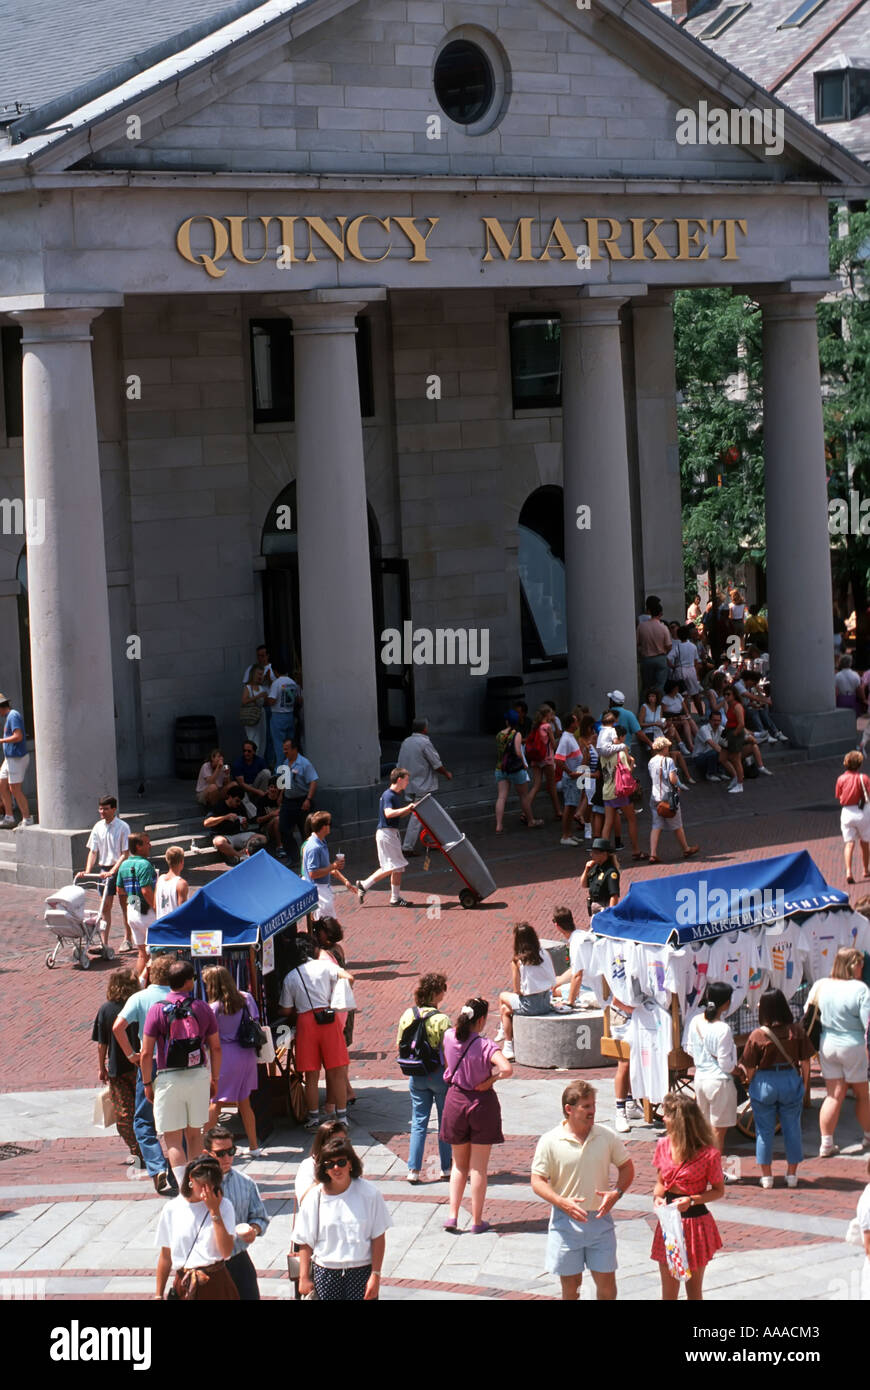 Quincy Market, distrito de compras, Boston, Massachusetts MA Imagen De Stock